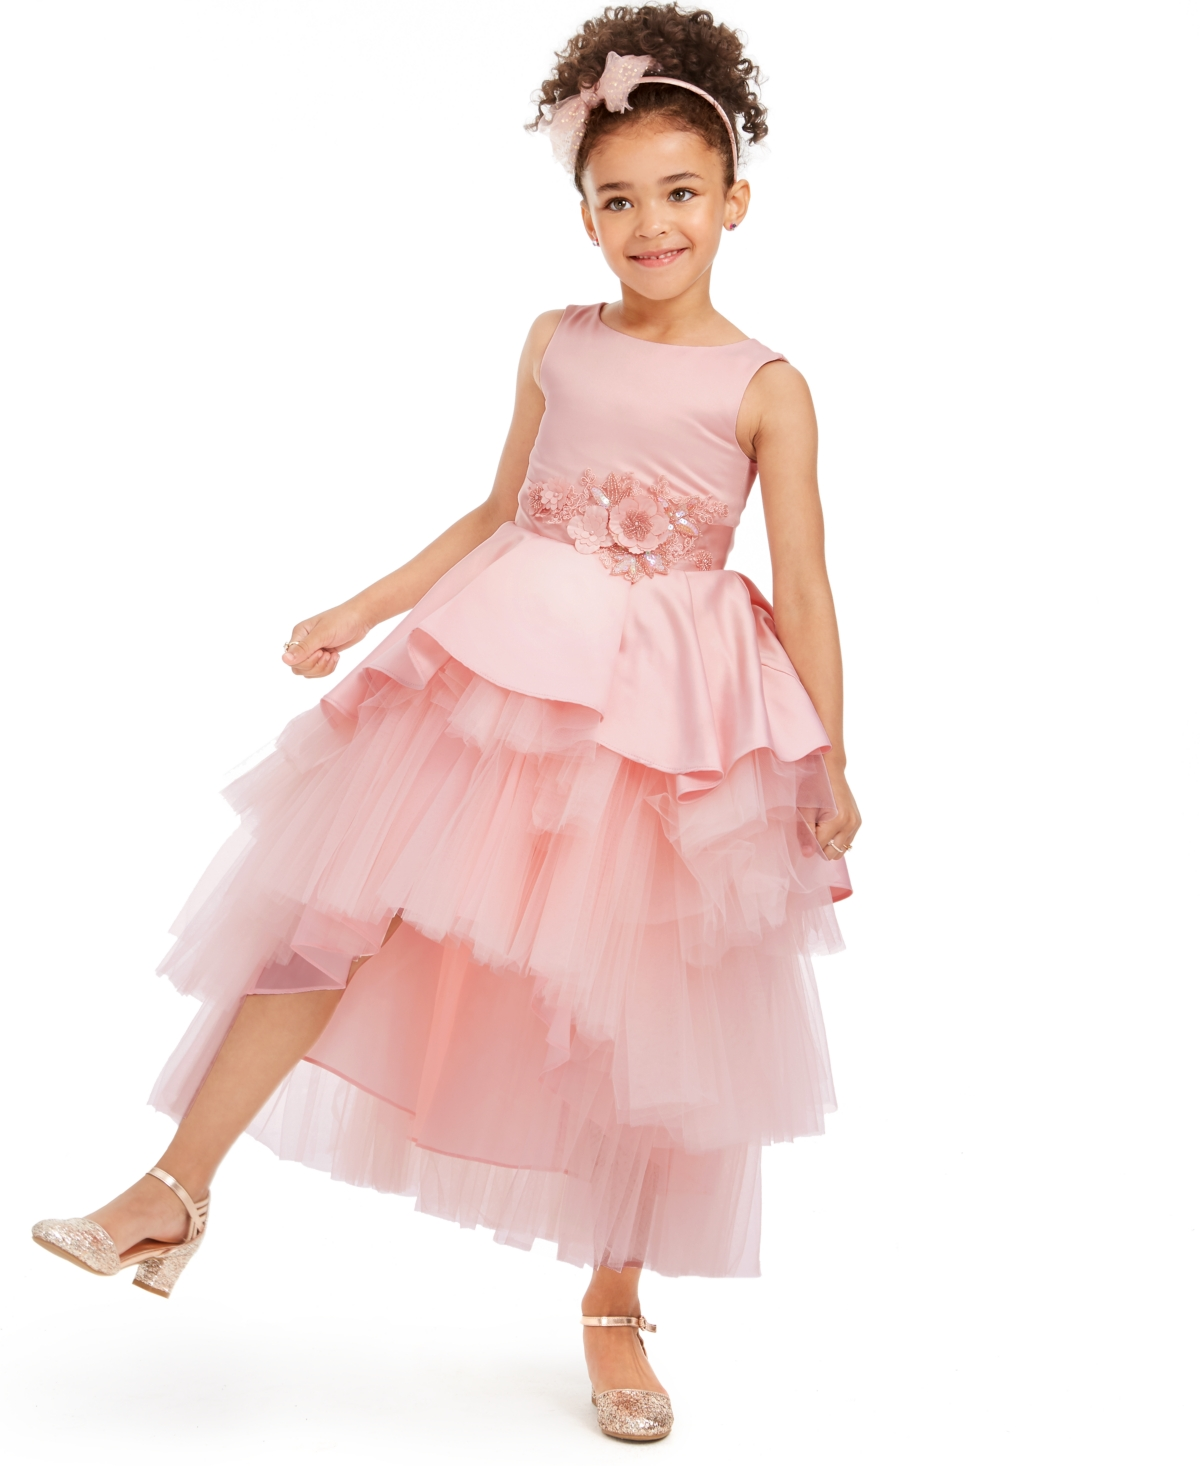 15936523 fpx - Kids & Baby Clothing